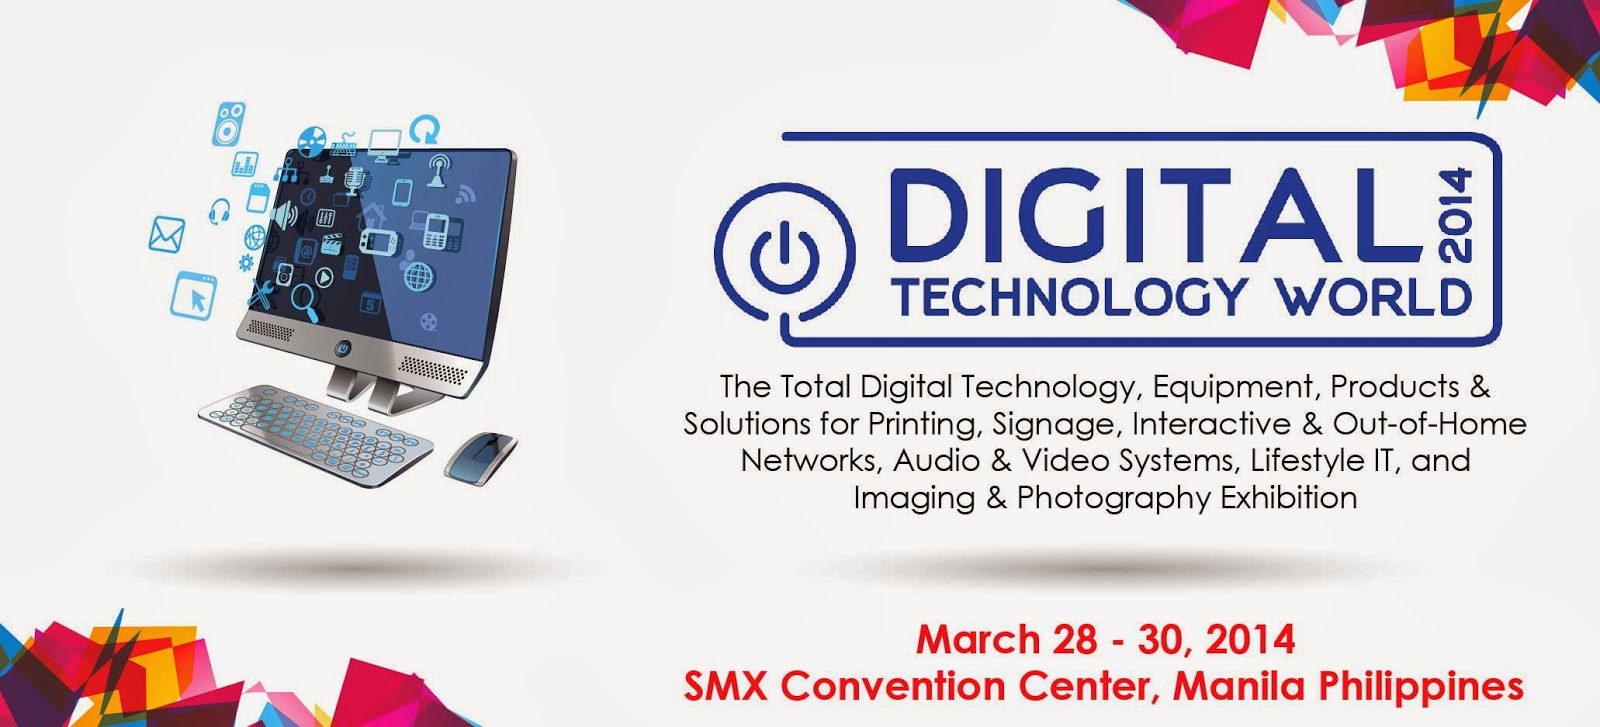 Digital Technology World 2014 at SMX Convention Center